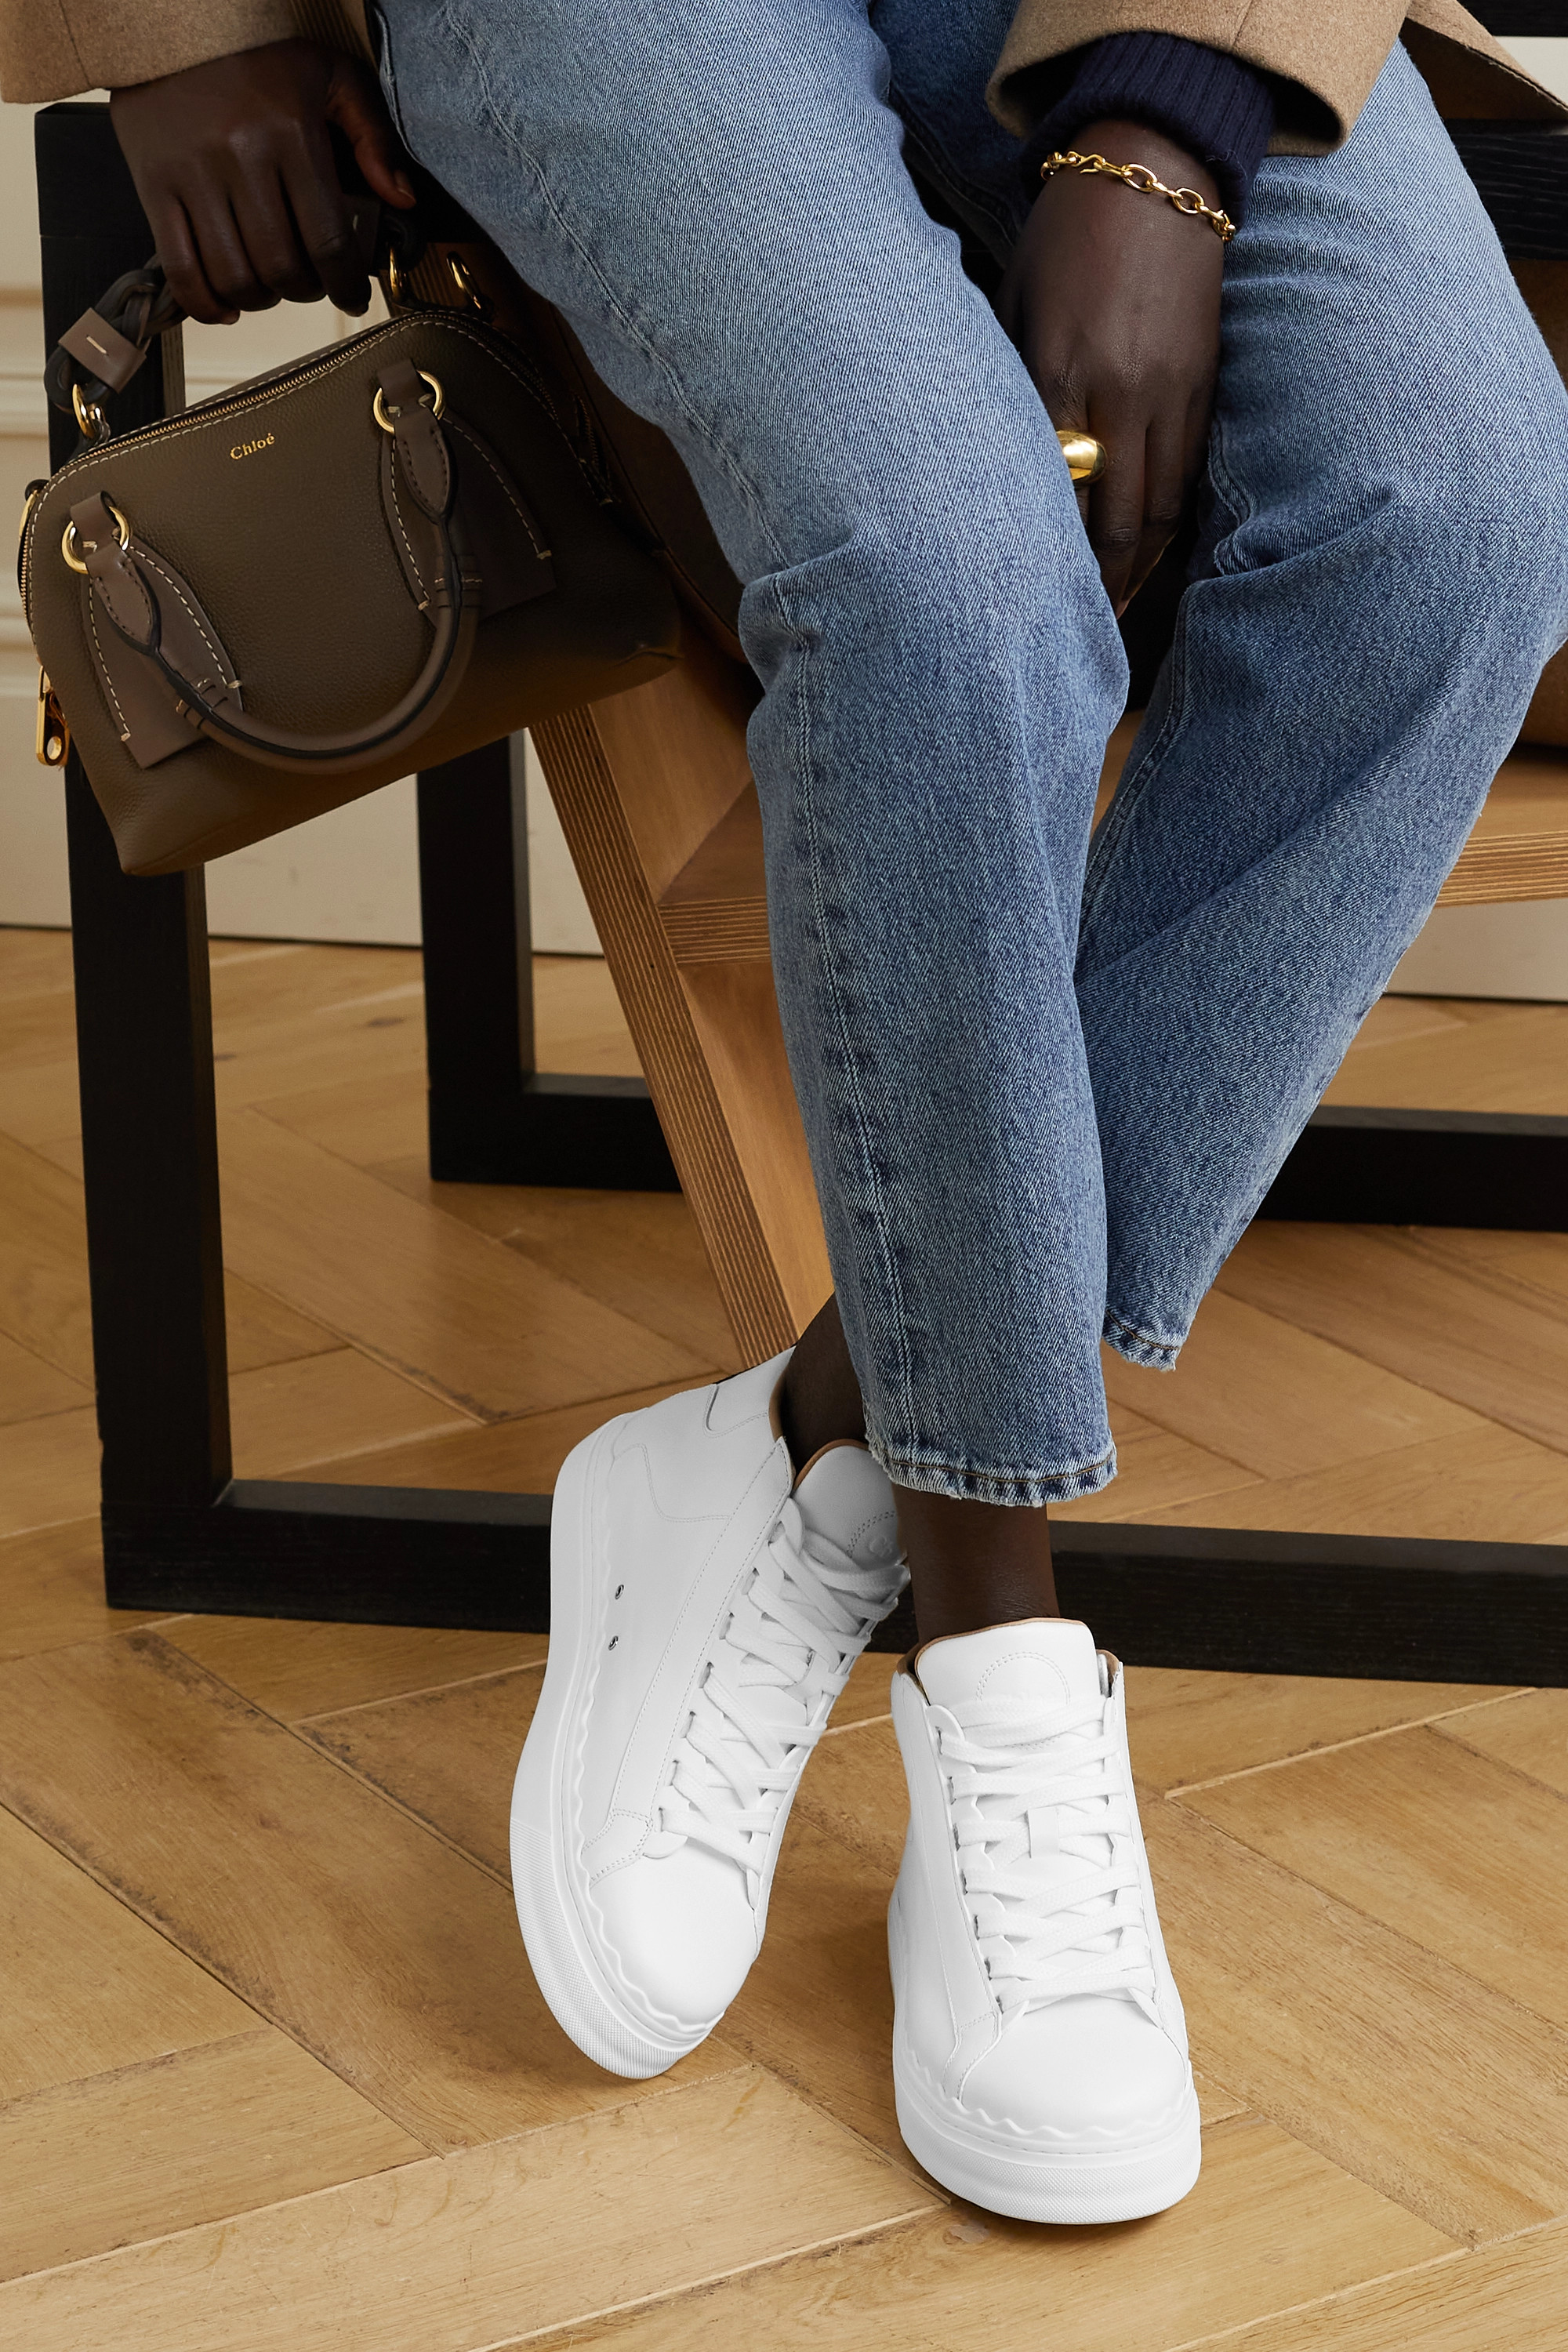 Chloé Lauren scalloped leather high-top sneakers